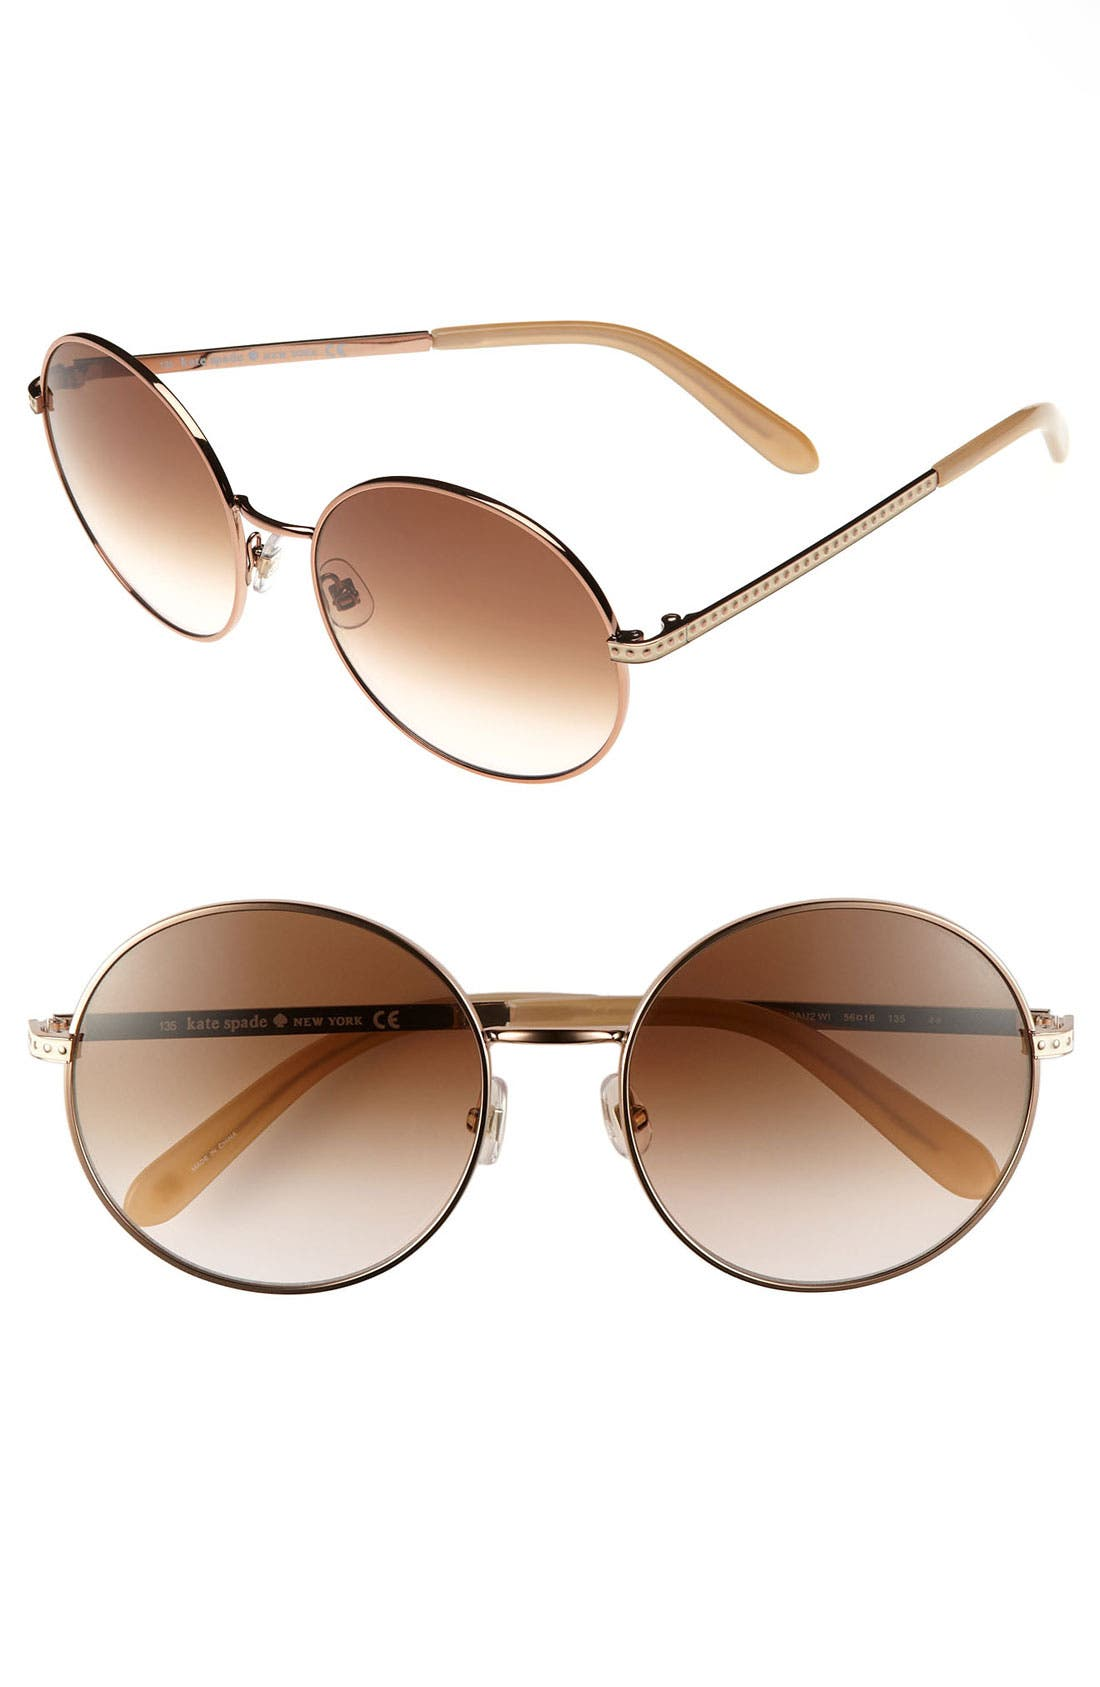 Main Image - kate spade new york 'avice' 56mm sunglasses